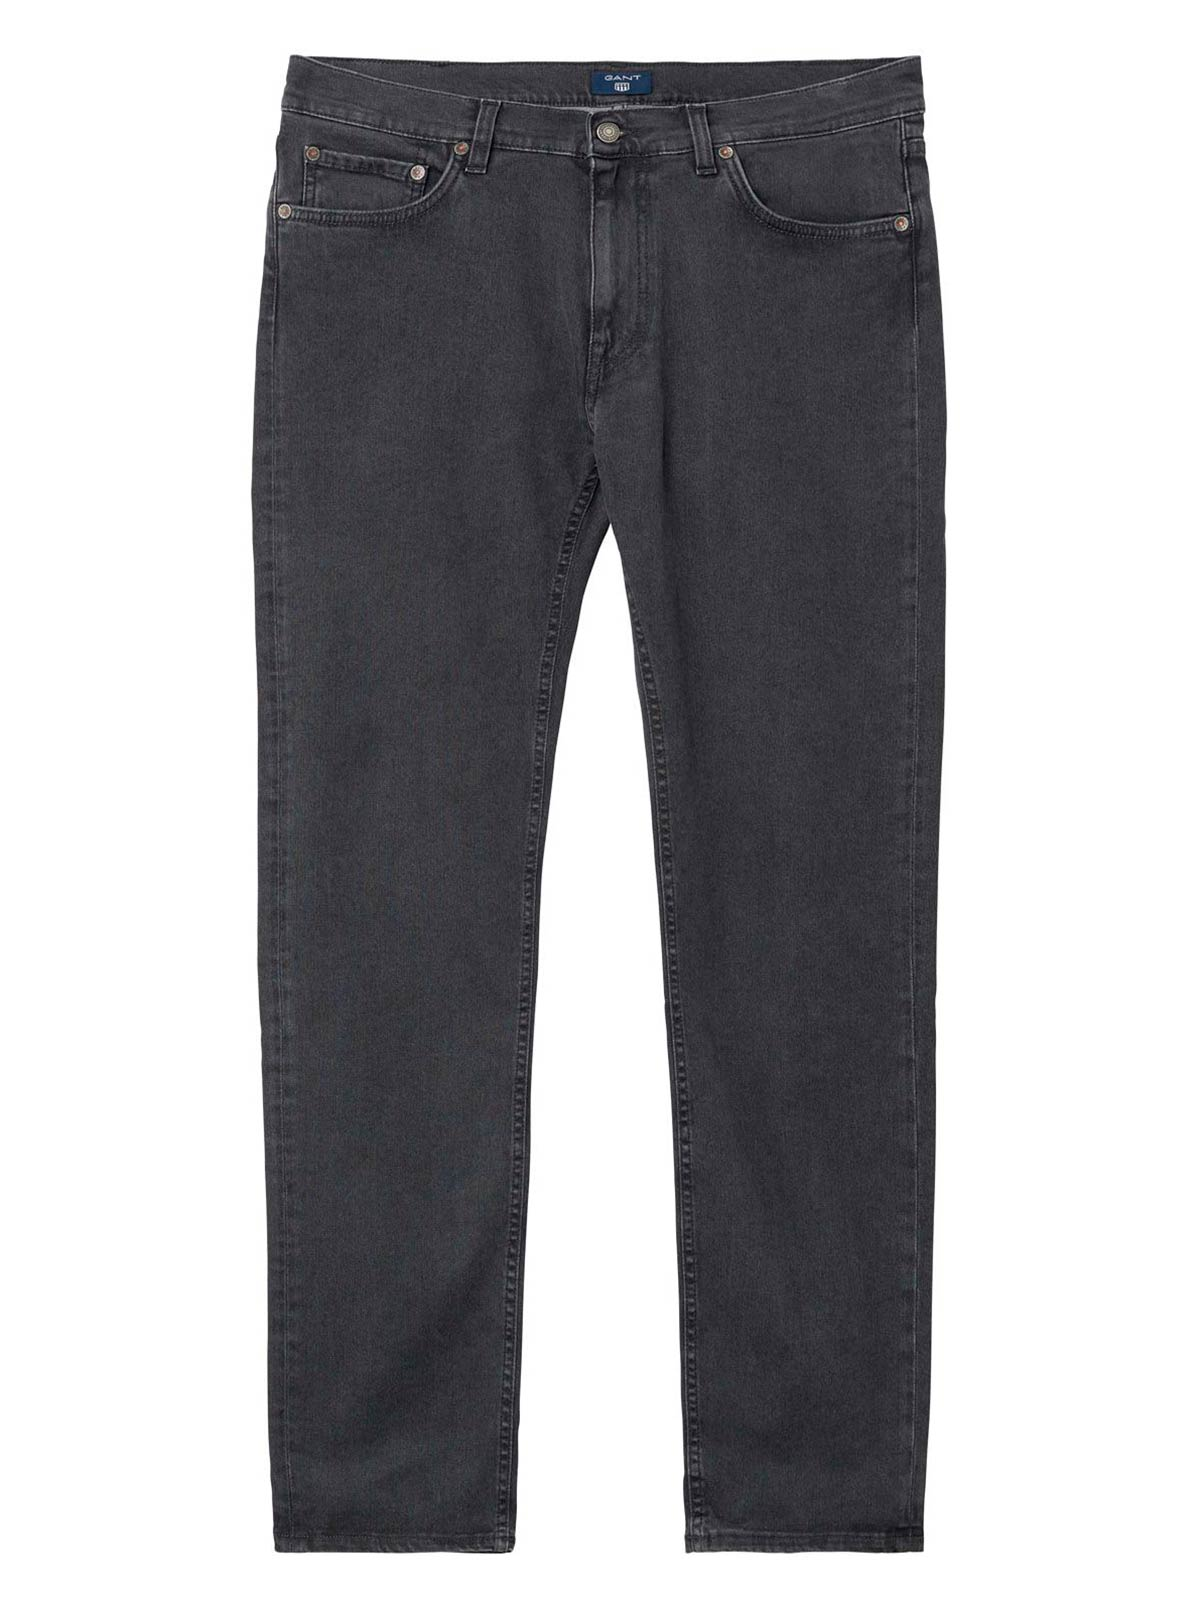 Picture of GANT | Men's Slim Jeans